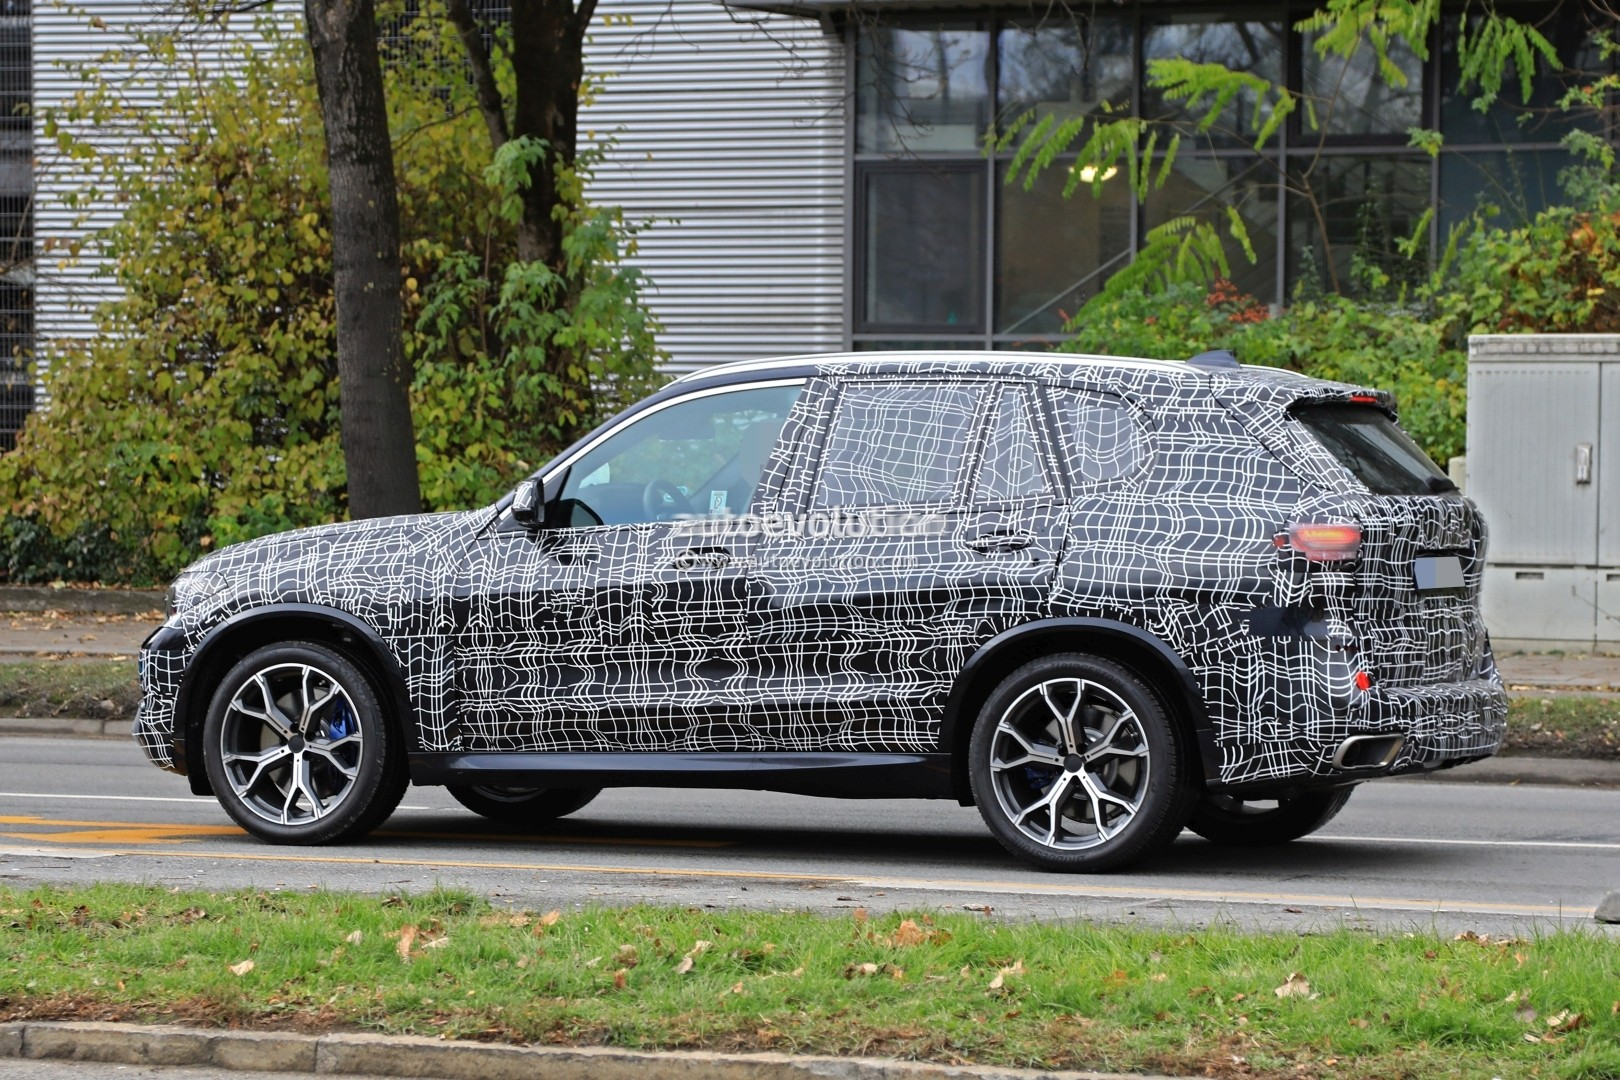 2019 Bmw X5 Spied In Germany Shows Sporty Stance Autoevolution